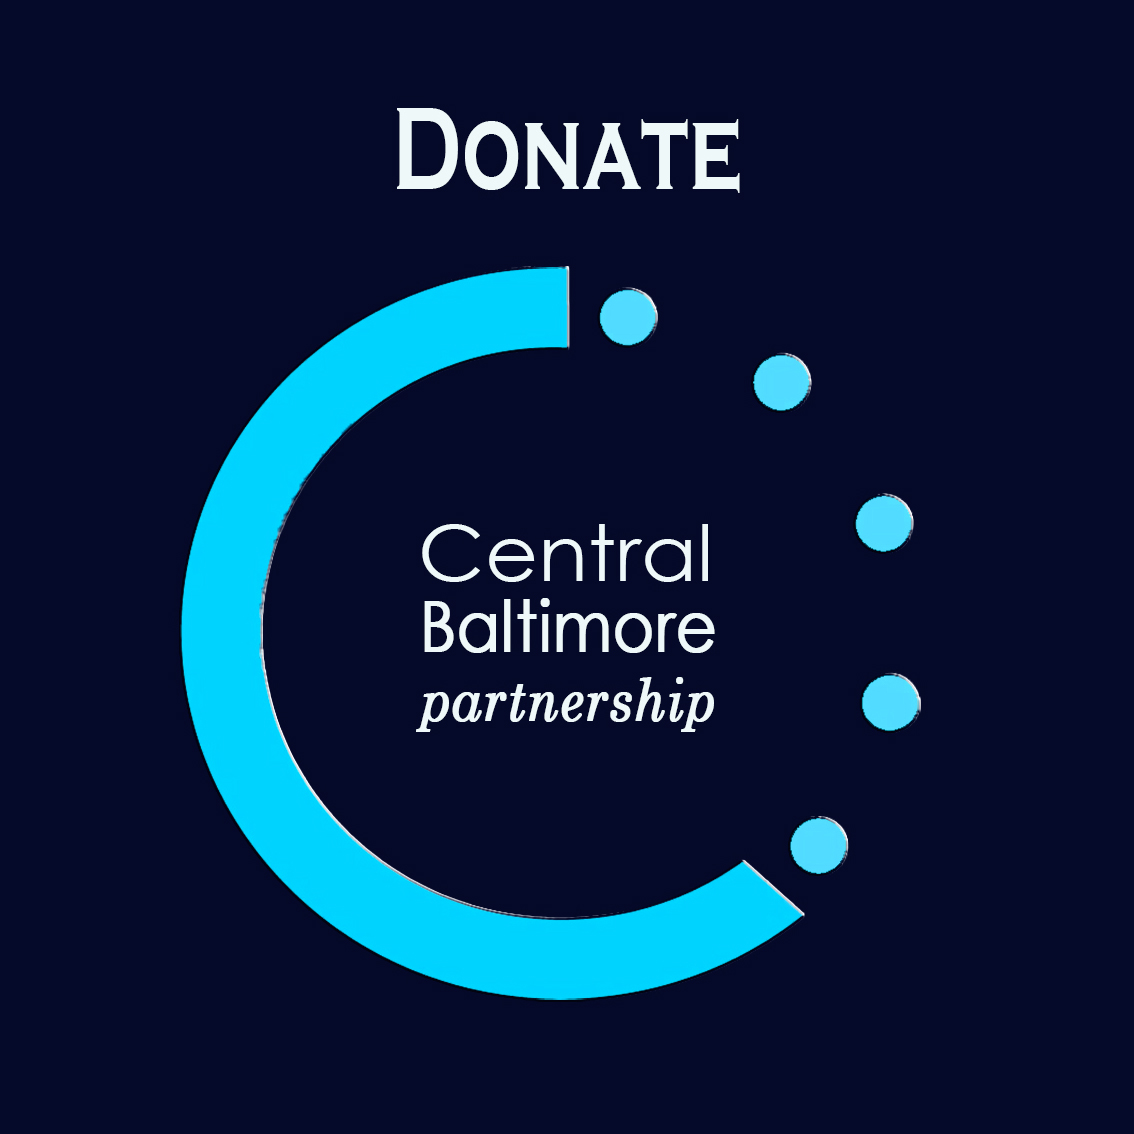 Donate to The Central Baltimore Partnership